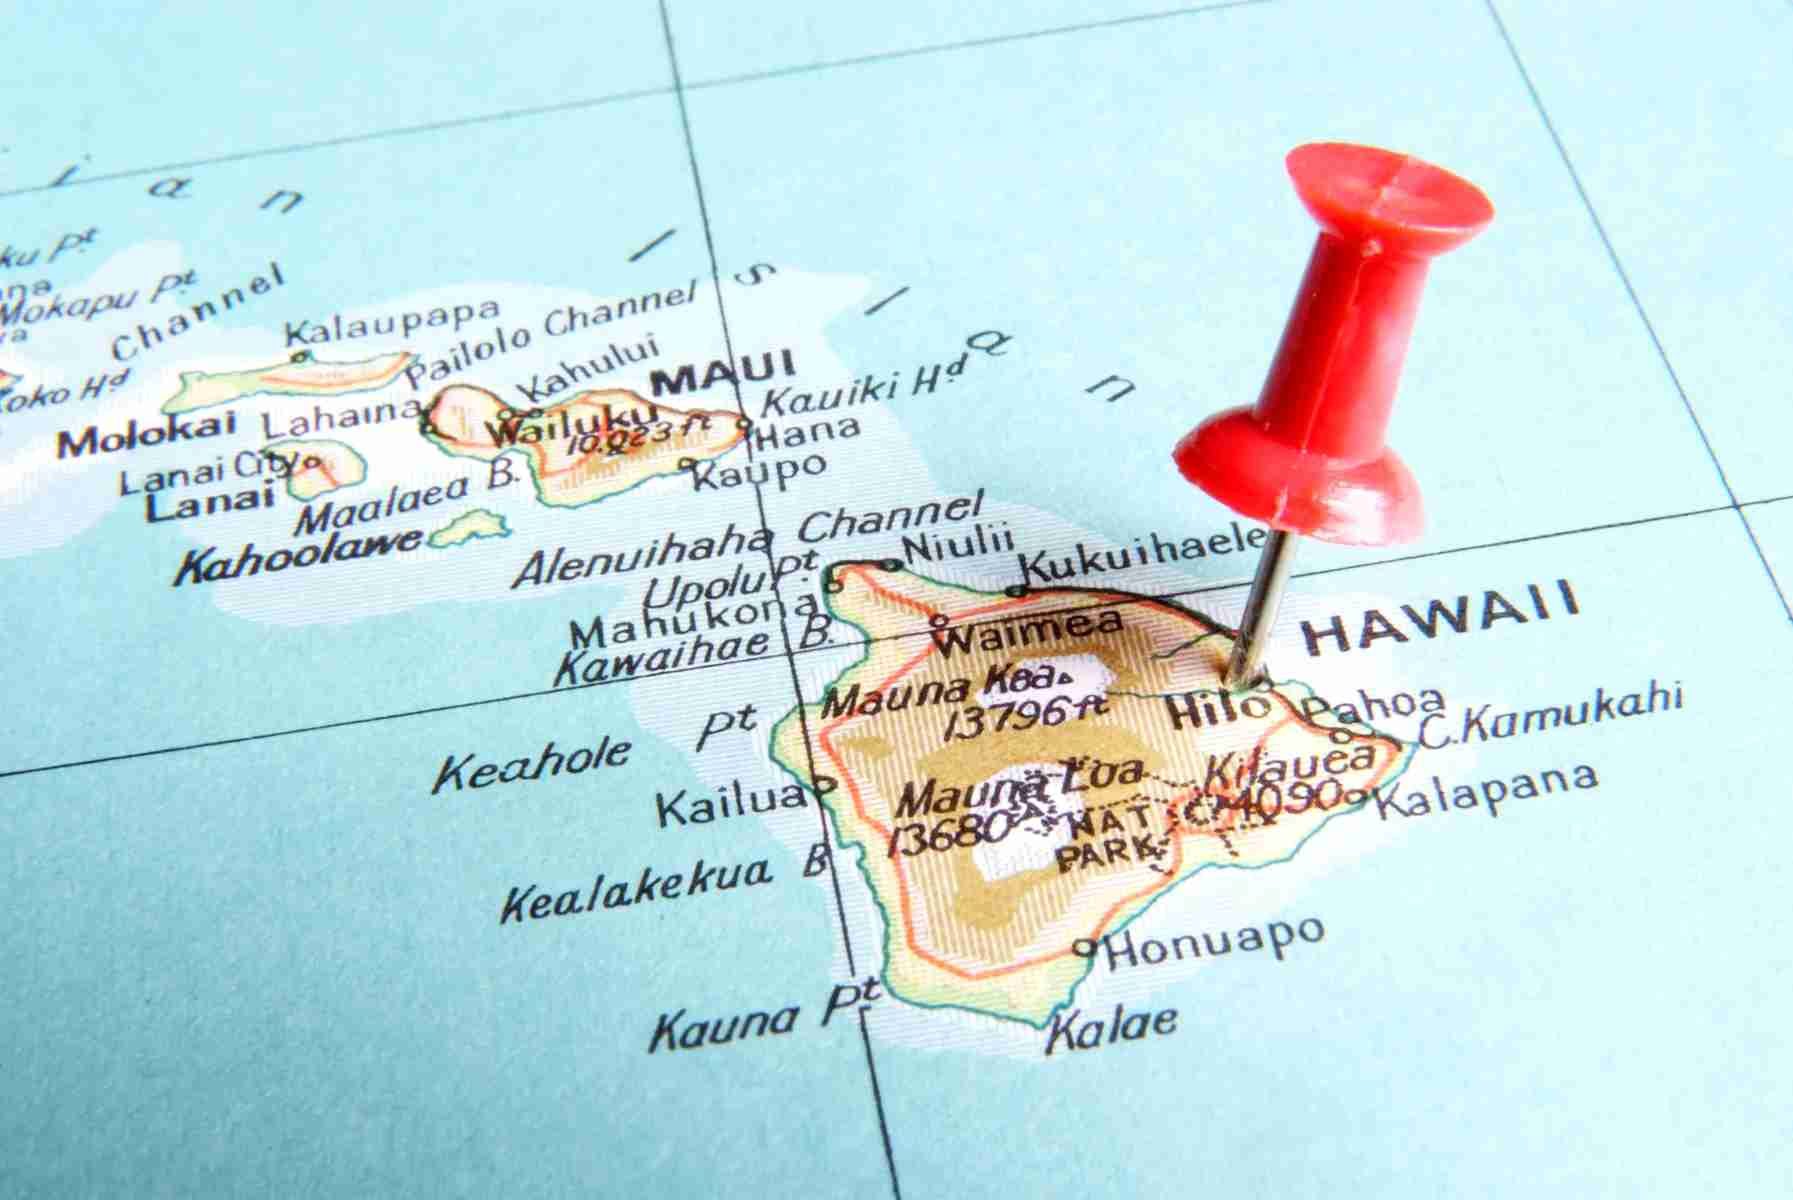 Red pin stuck into map of Hawaii